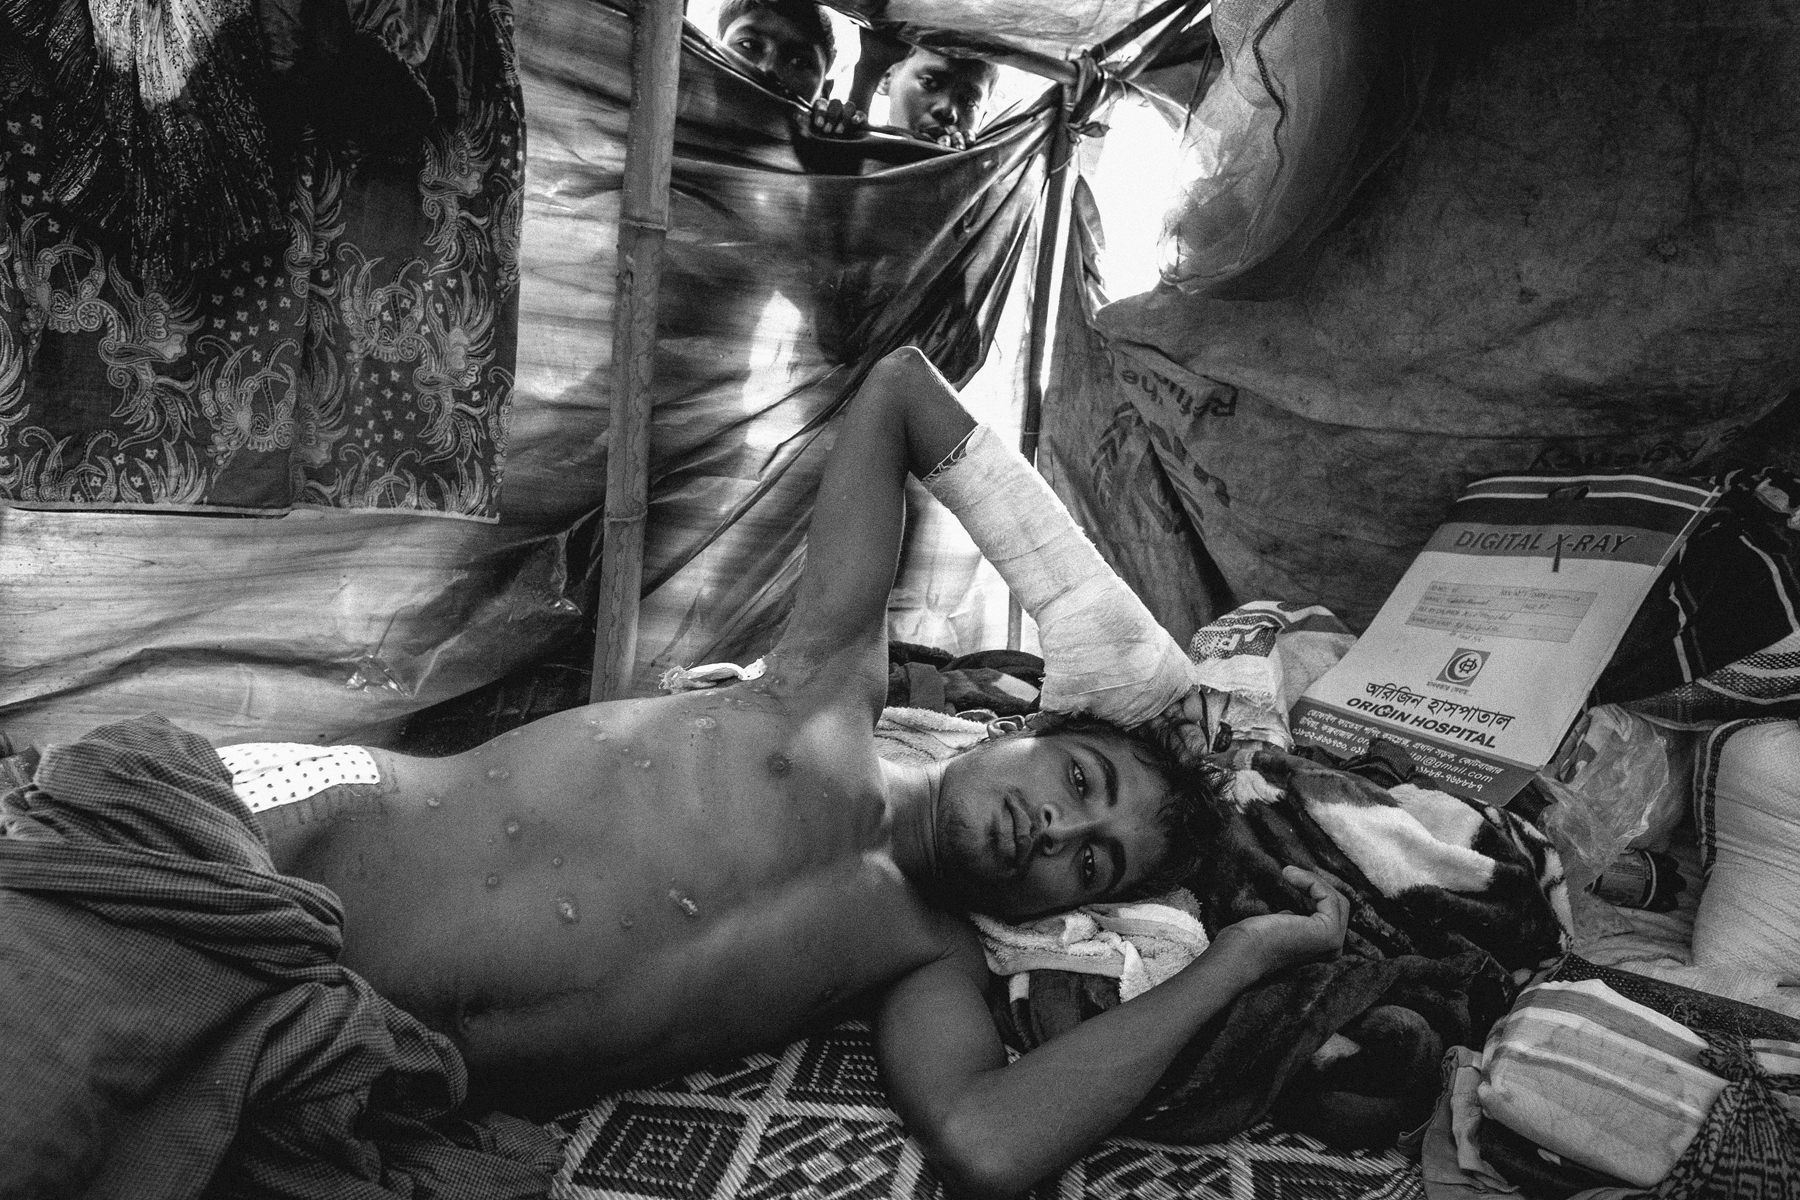 21 year old Shobir Ahamed was shot and hit by a mortar when his village in Buthidaung was attacked by the Myanmar military.  Despite his injuries, he was able to make it to a makeshift camp in Thaing Khali, Bangladesh where an MSF clinic provided him basic medical assistance.